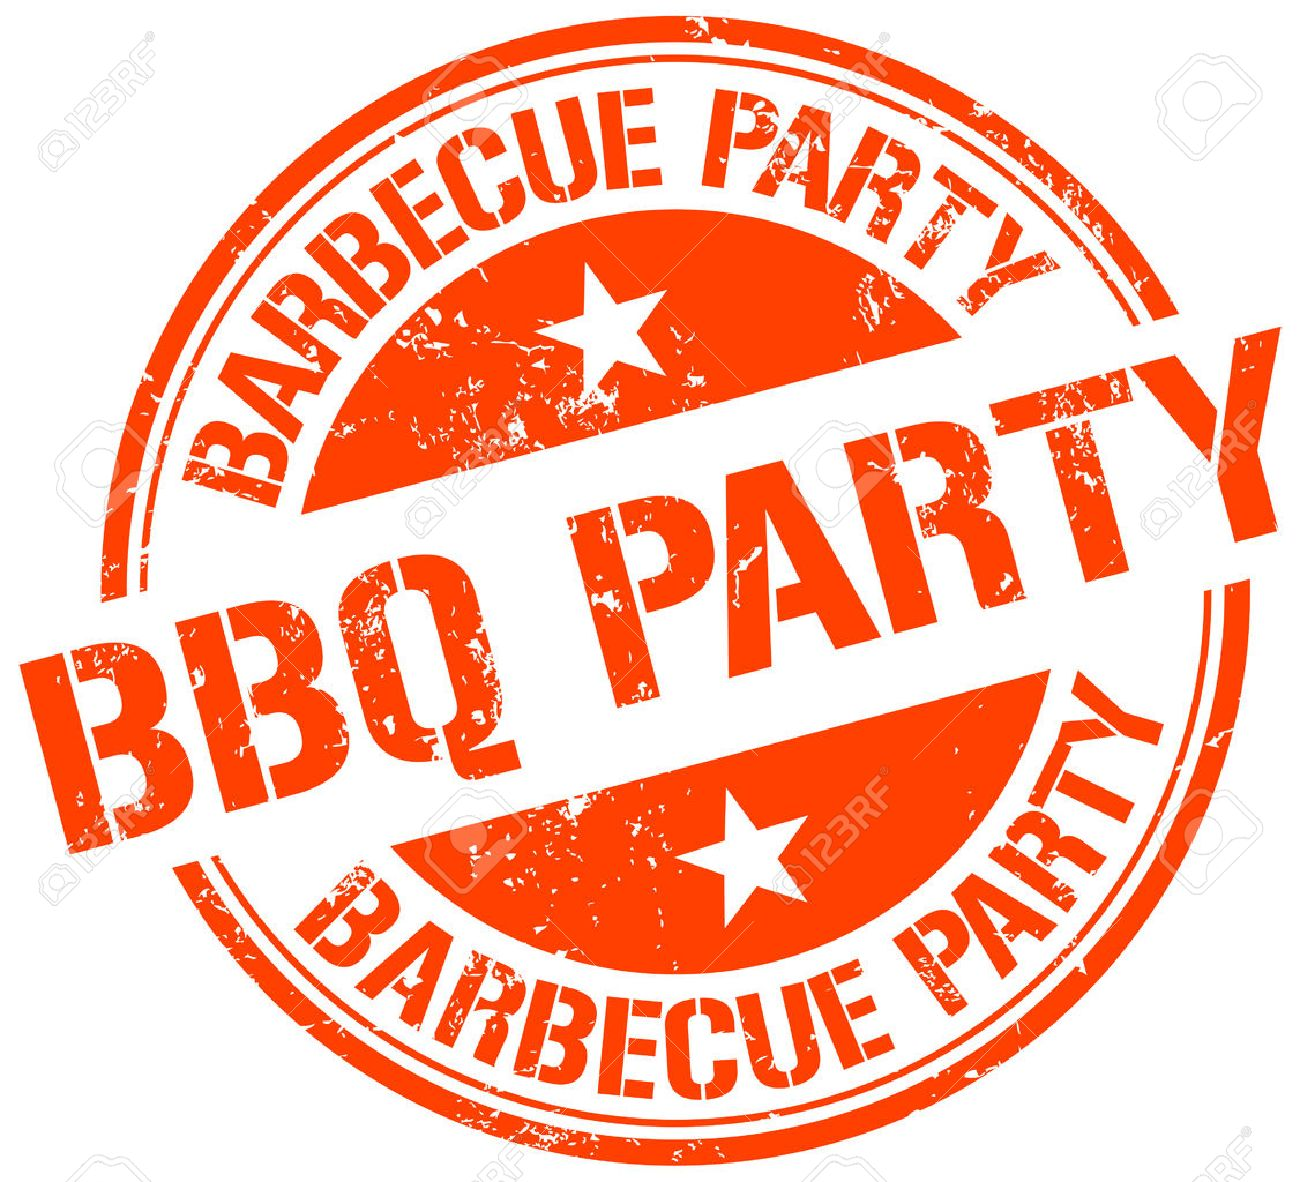 bbq party stamp royalty free cliparts, vectors, and stock